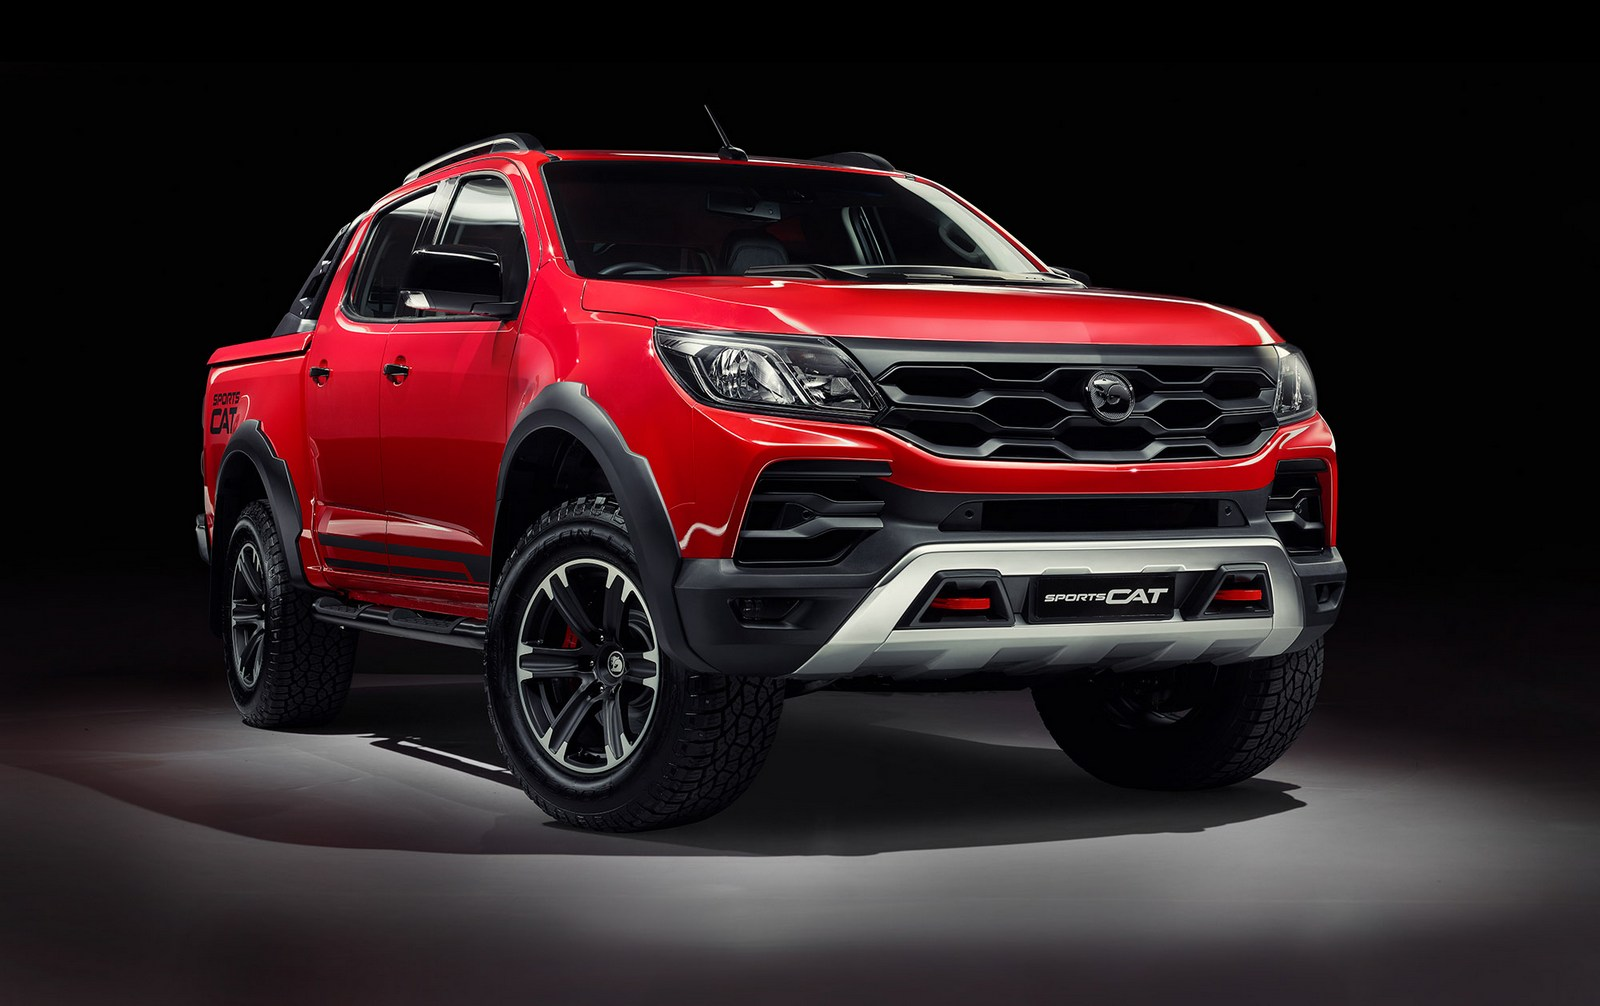 2018 Holden Colorado SportsCat By HSV Is All About Off-Road Fun - autoevolution